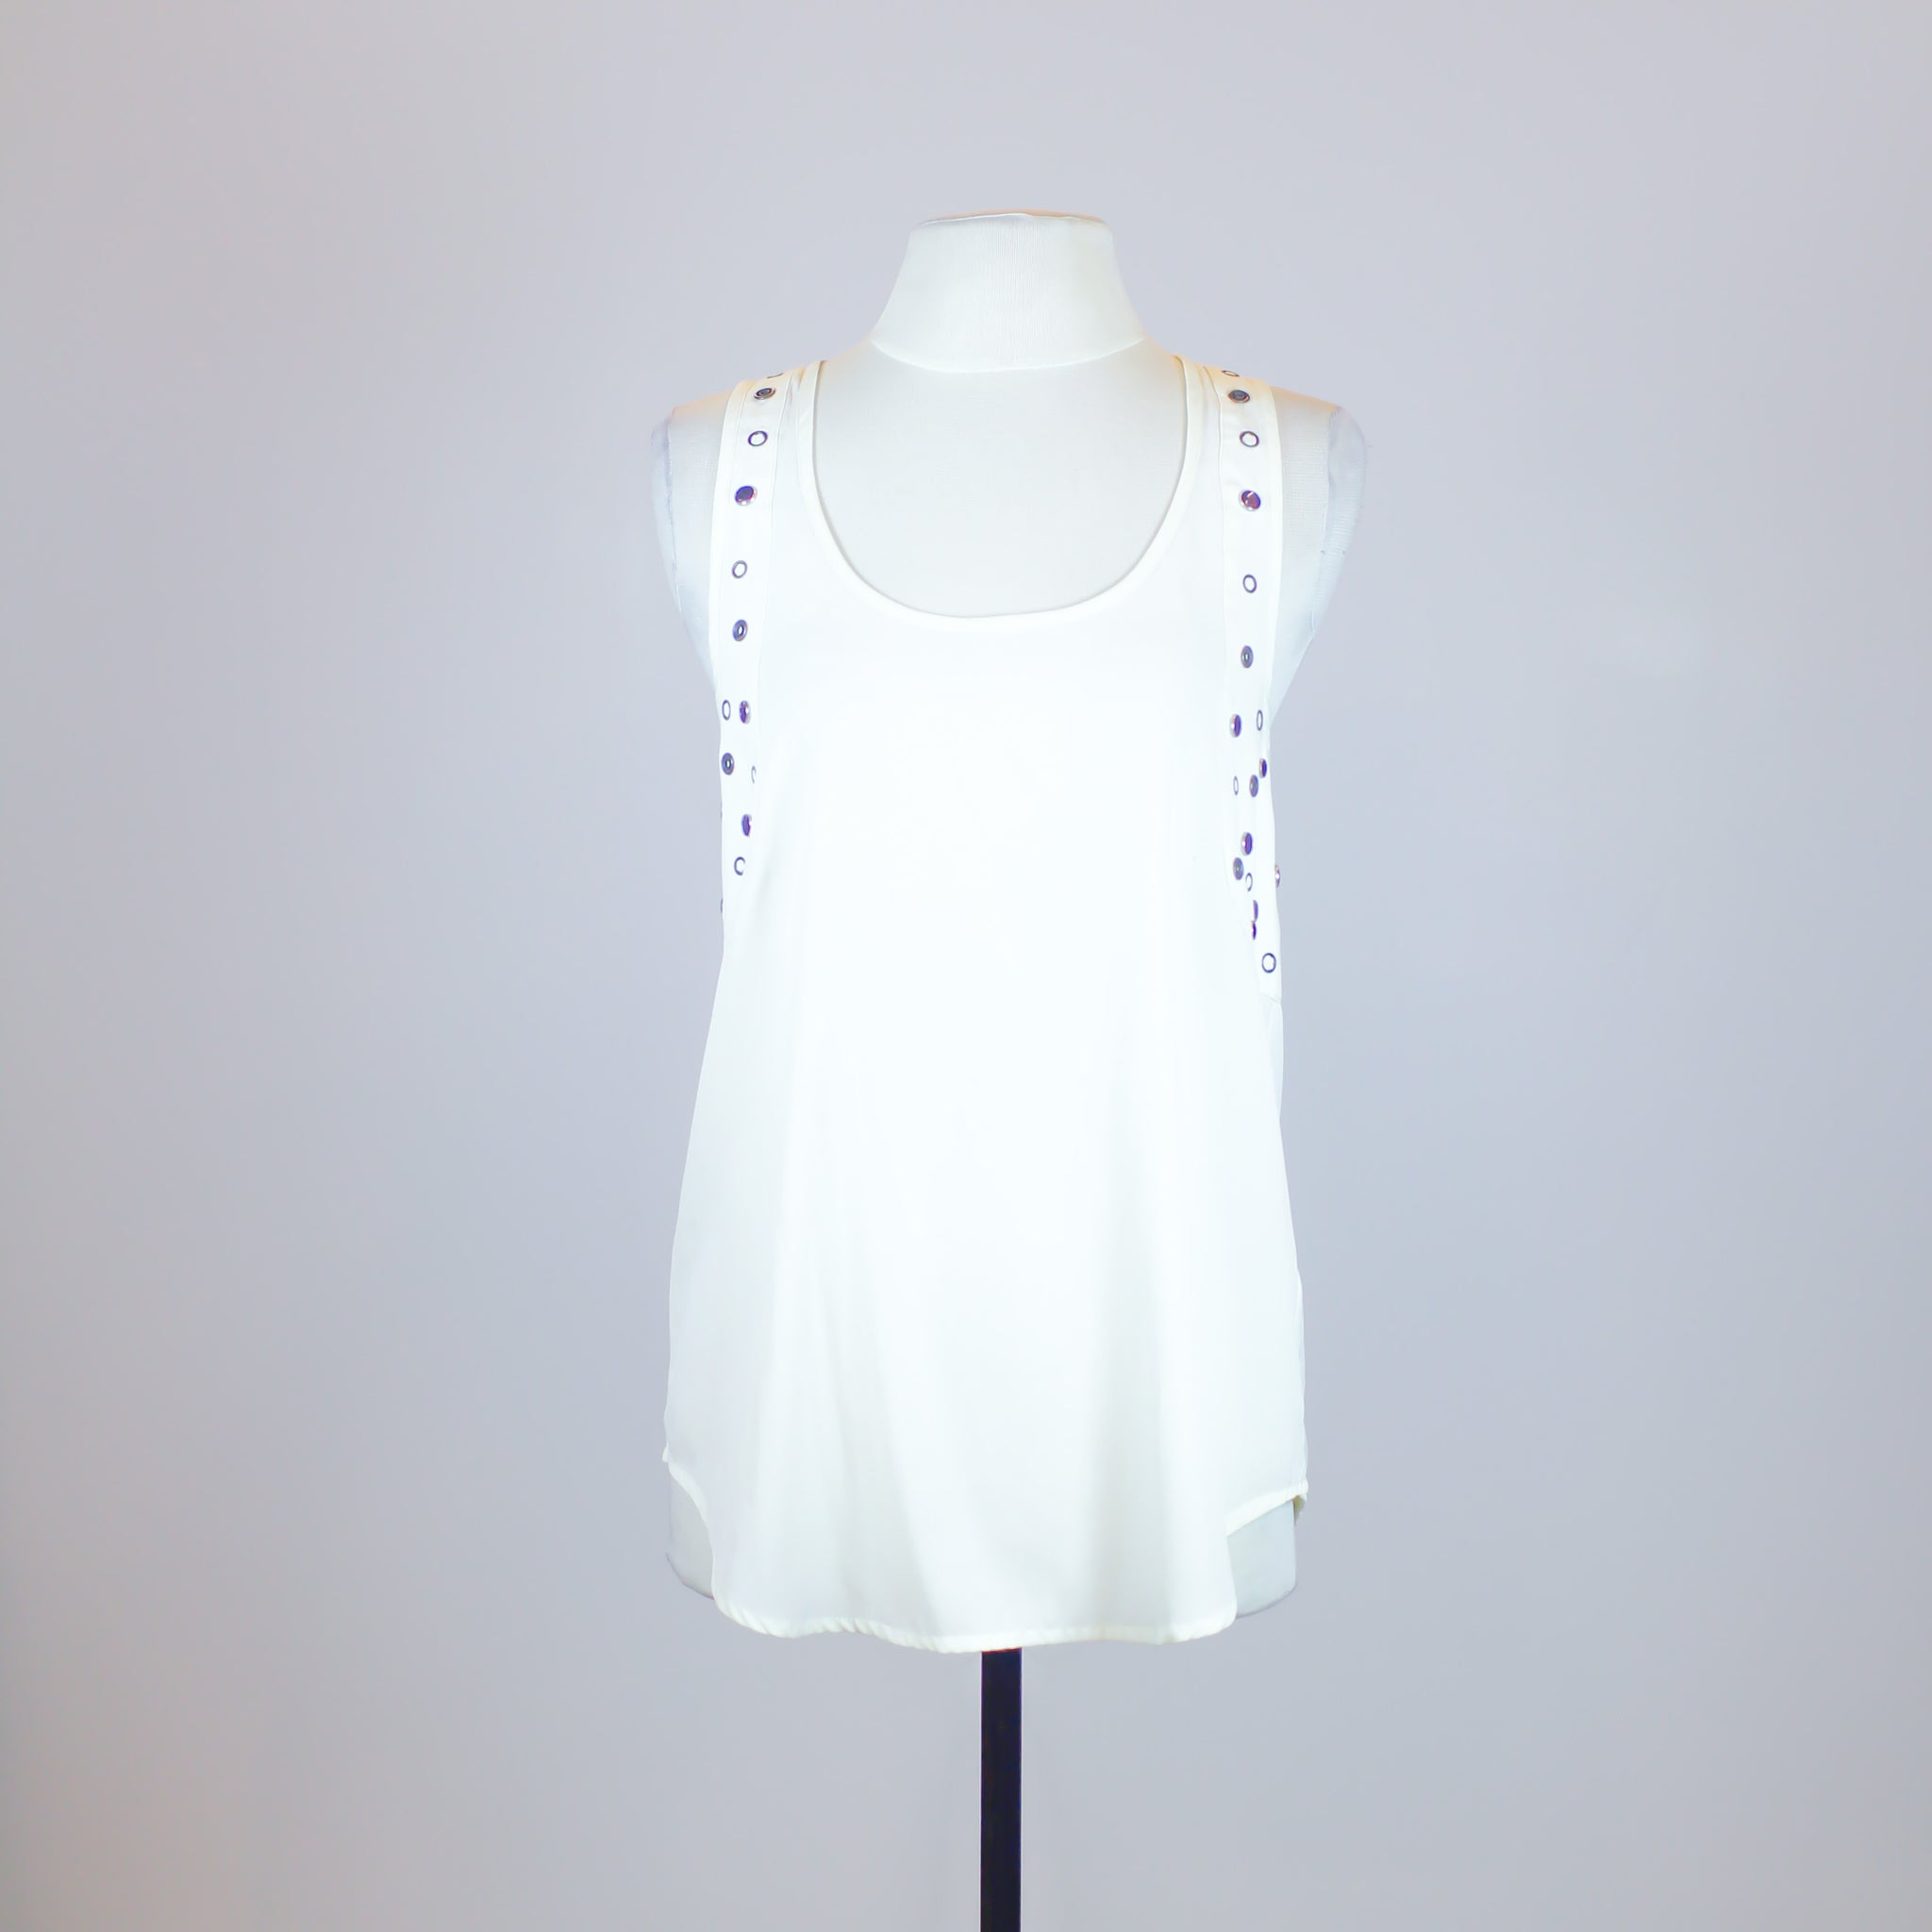 Topshop Cream Sleeveless Top with Button Designs